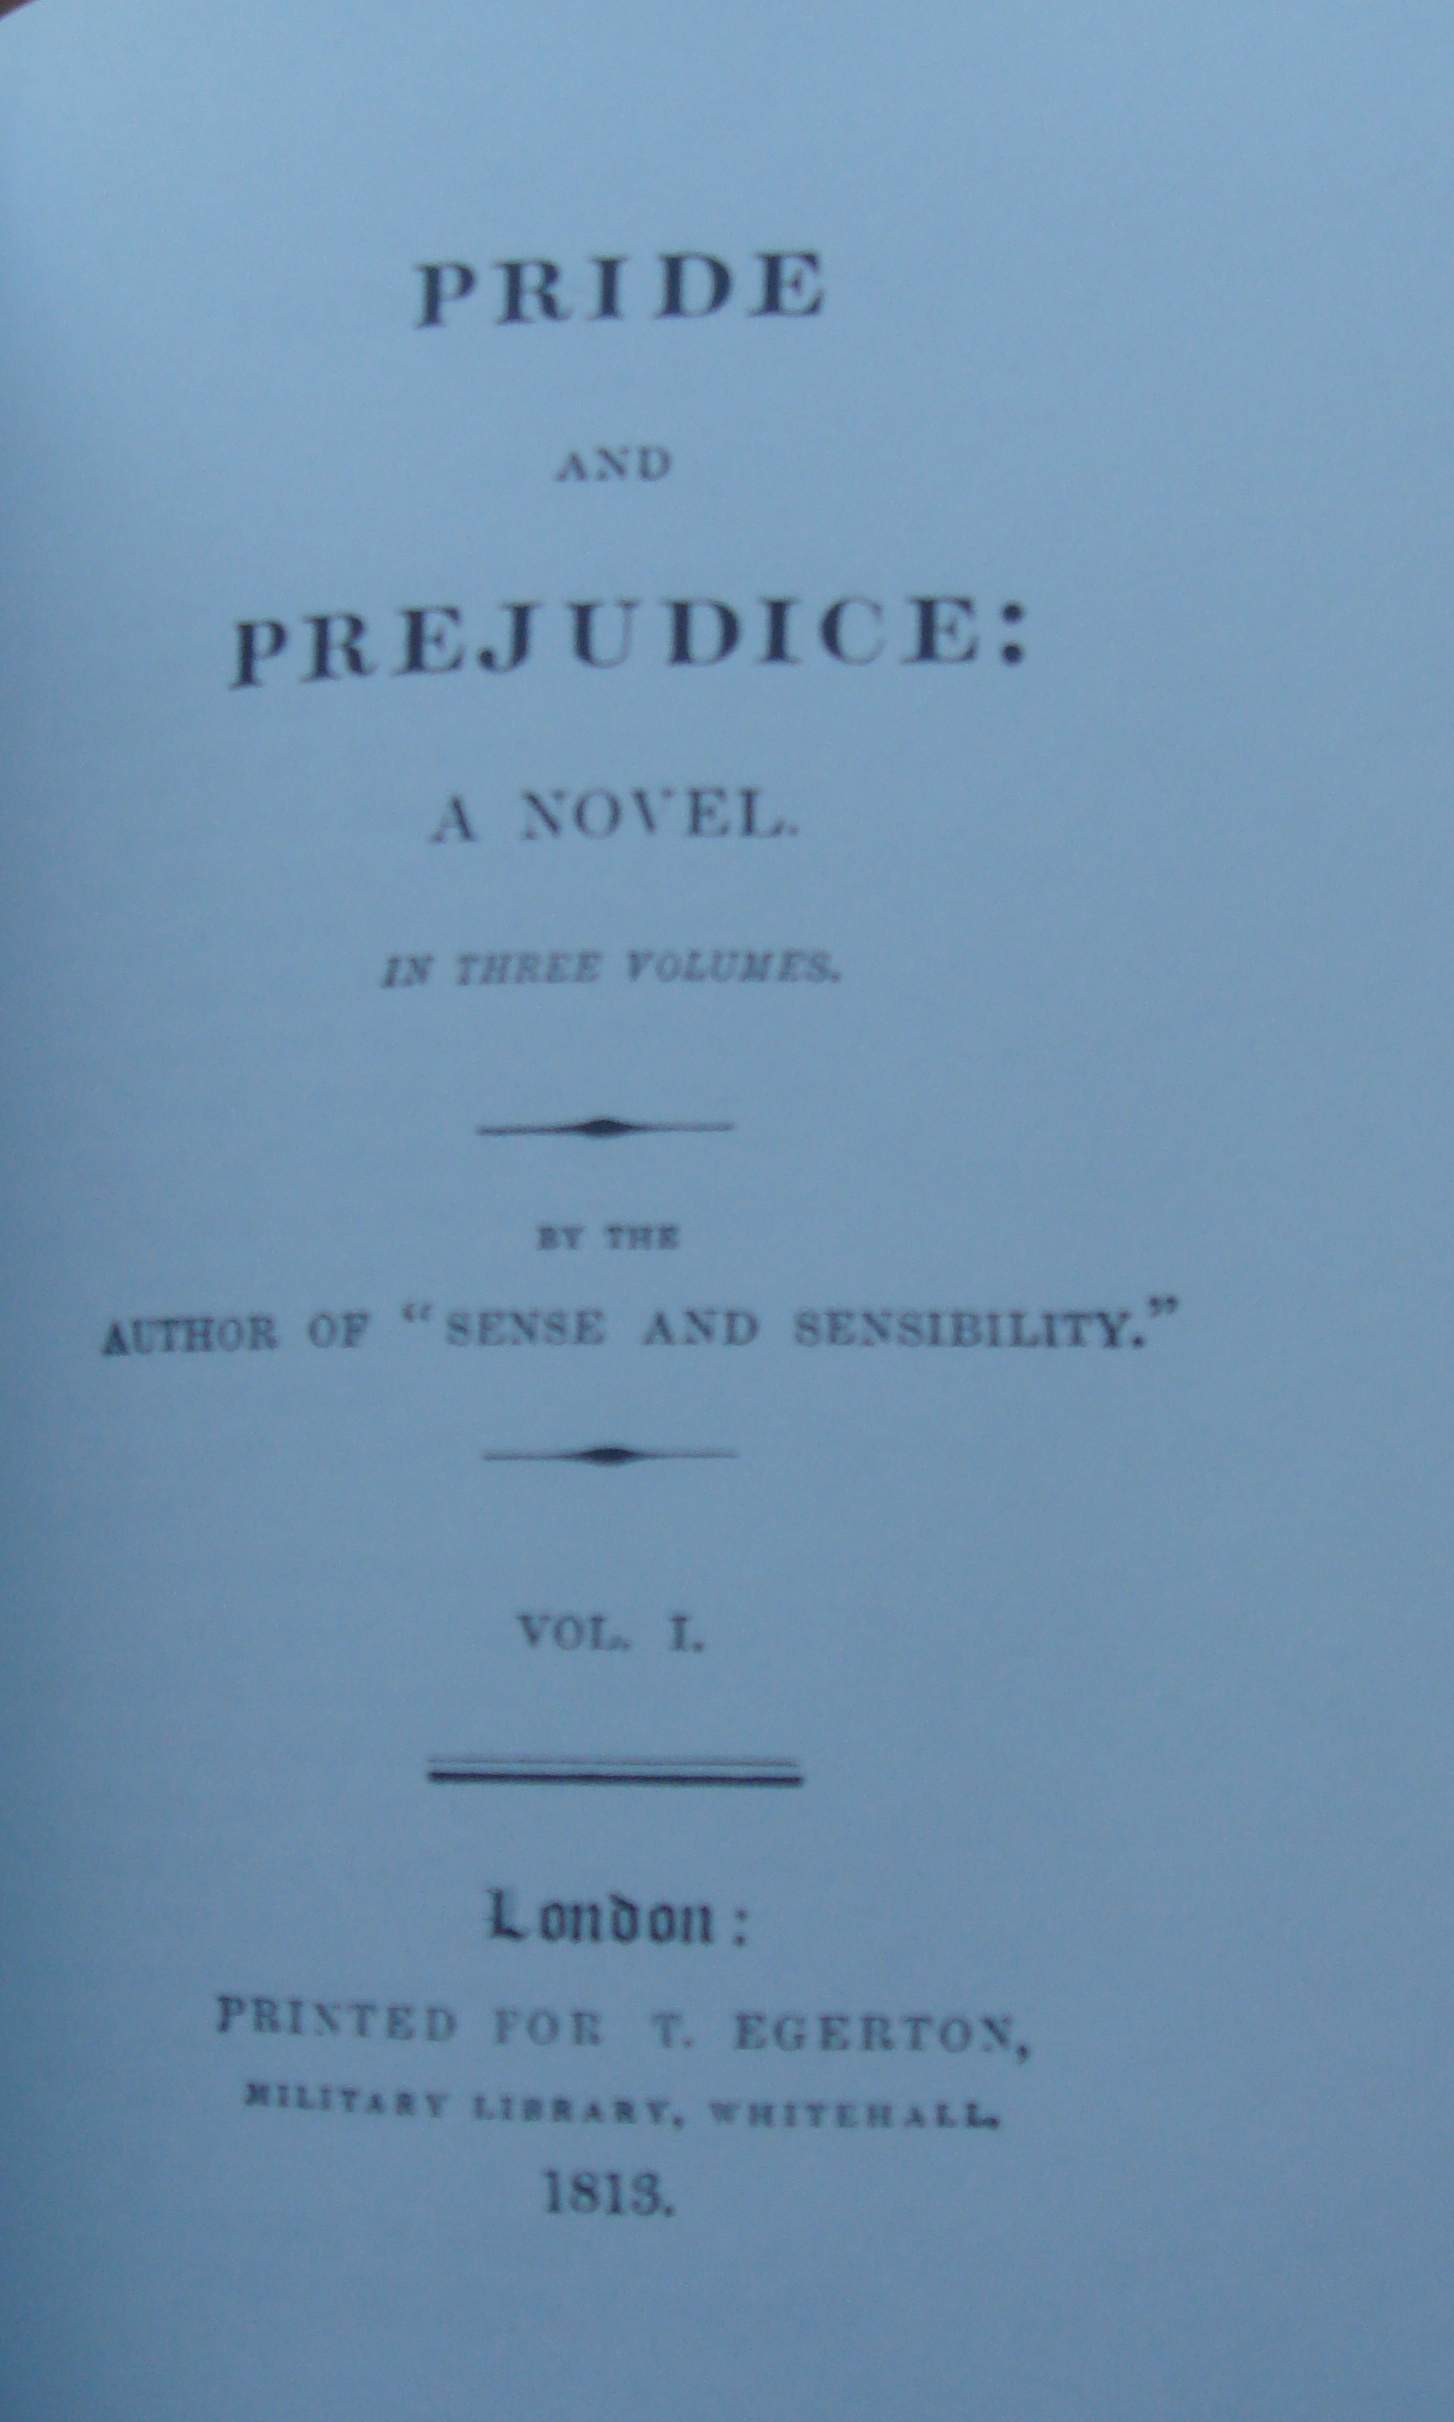 the youngers writework title page of original edition of pride and prejudice 1813